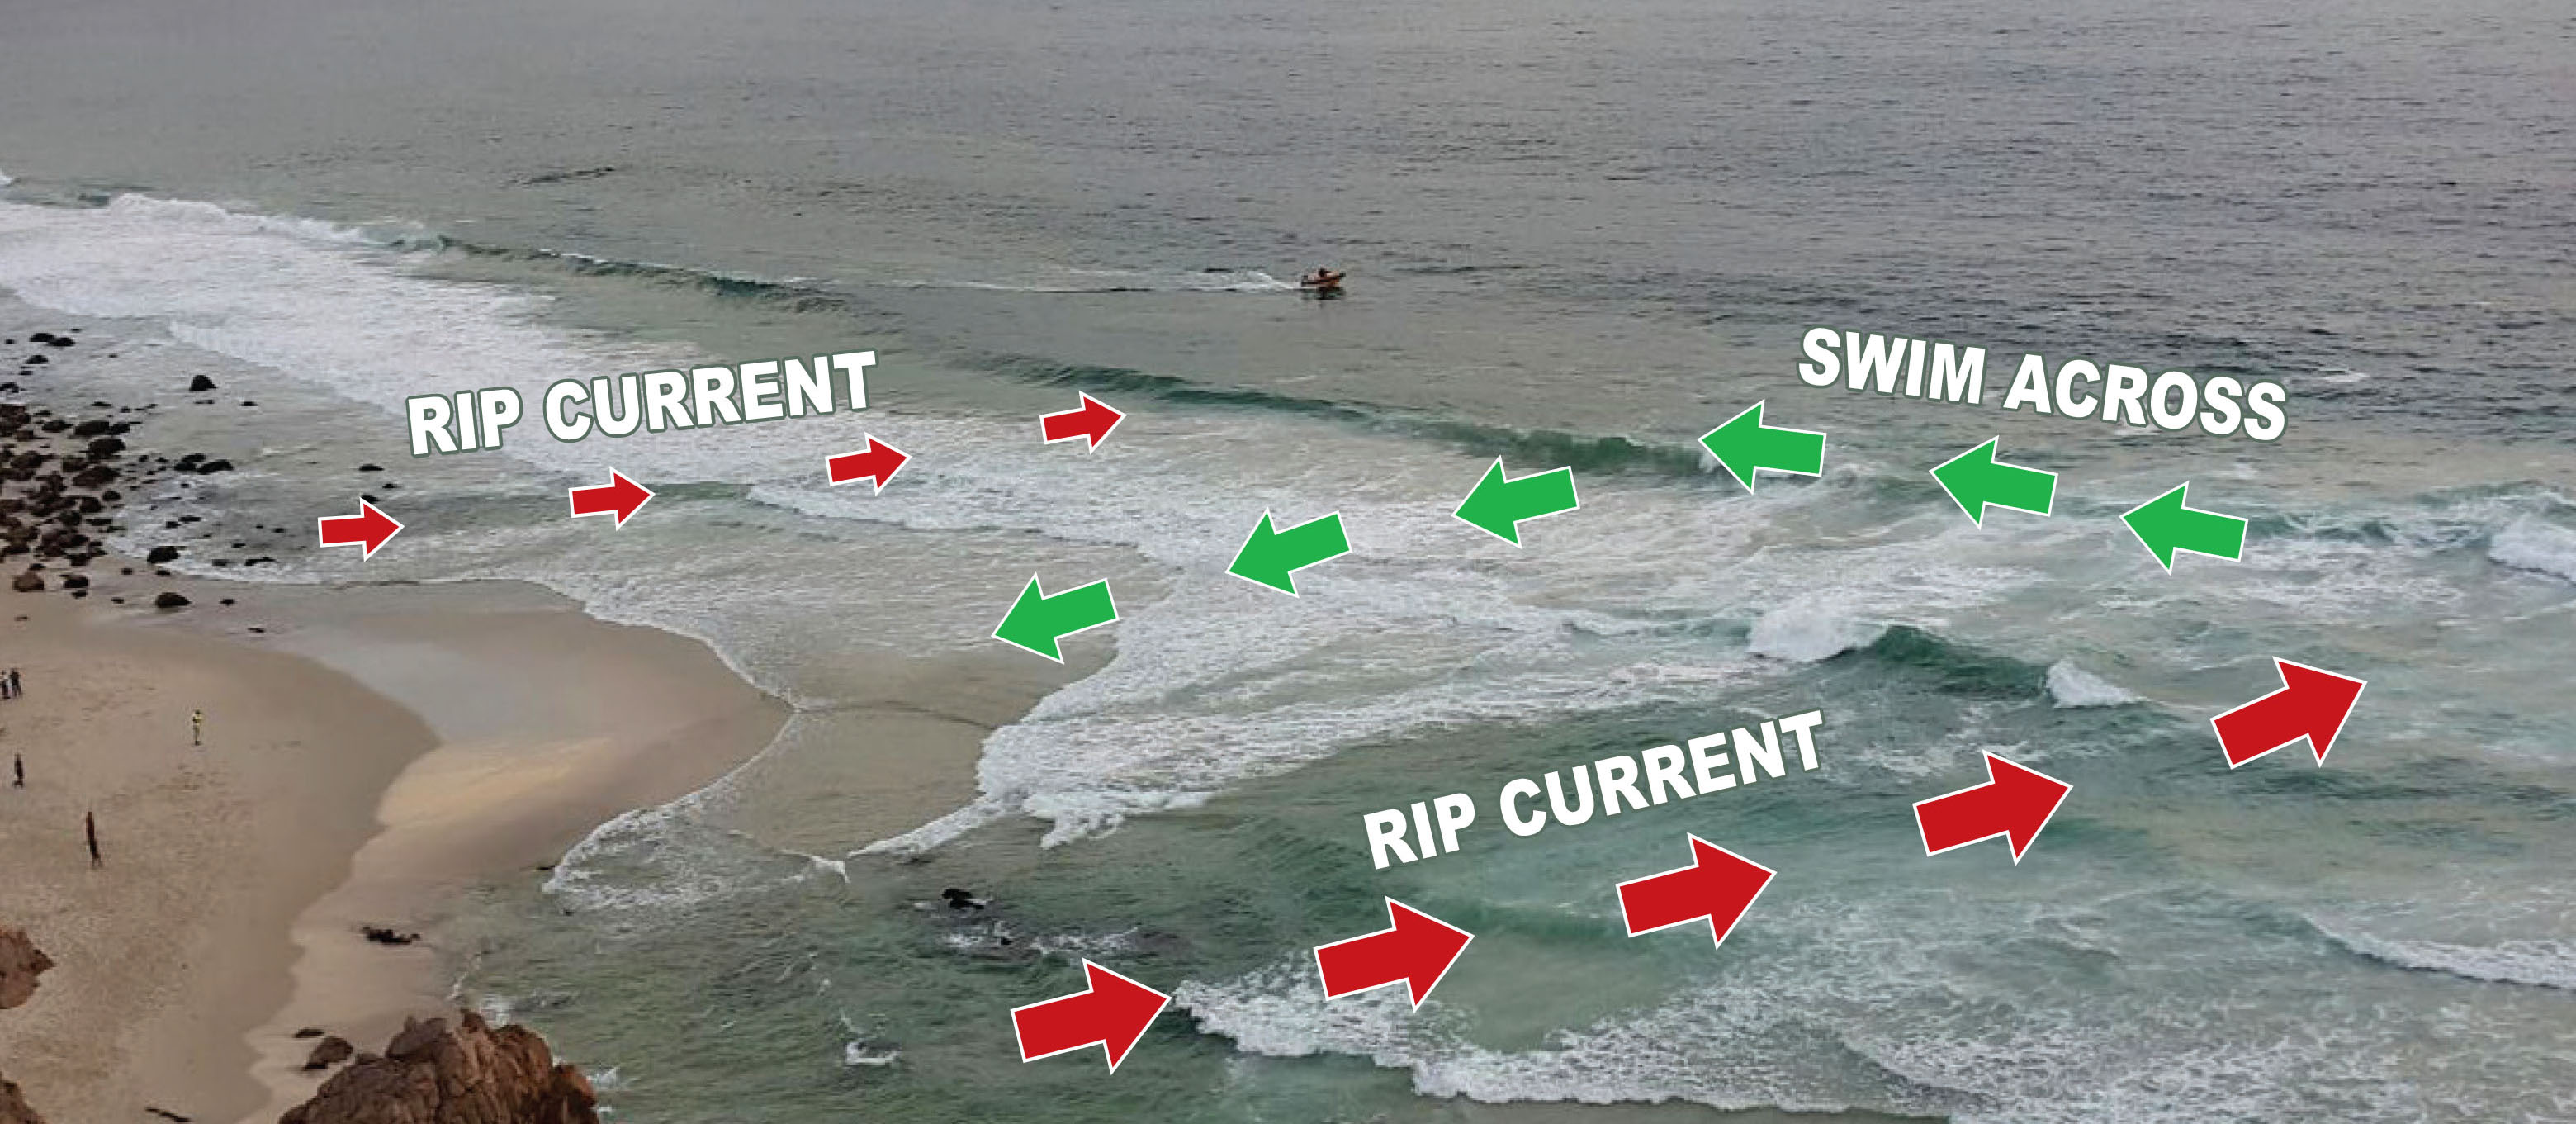 The red arrows show the rip current and green arrows how to swim to escape from the rip.